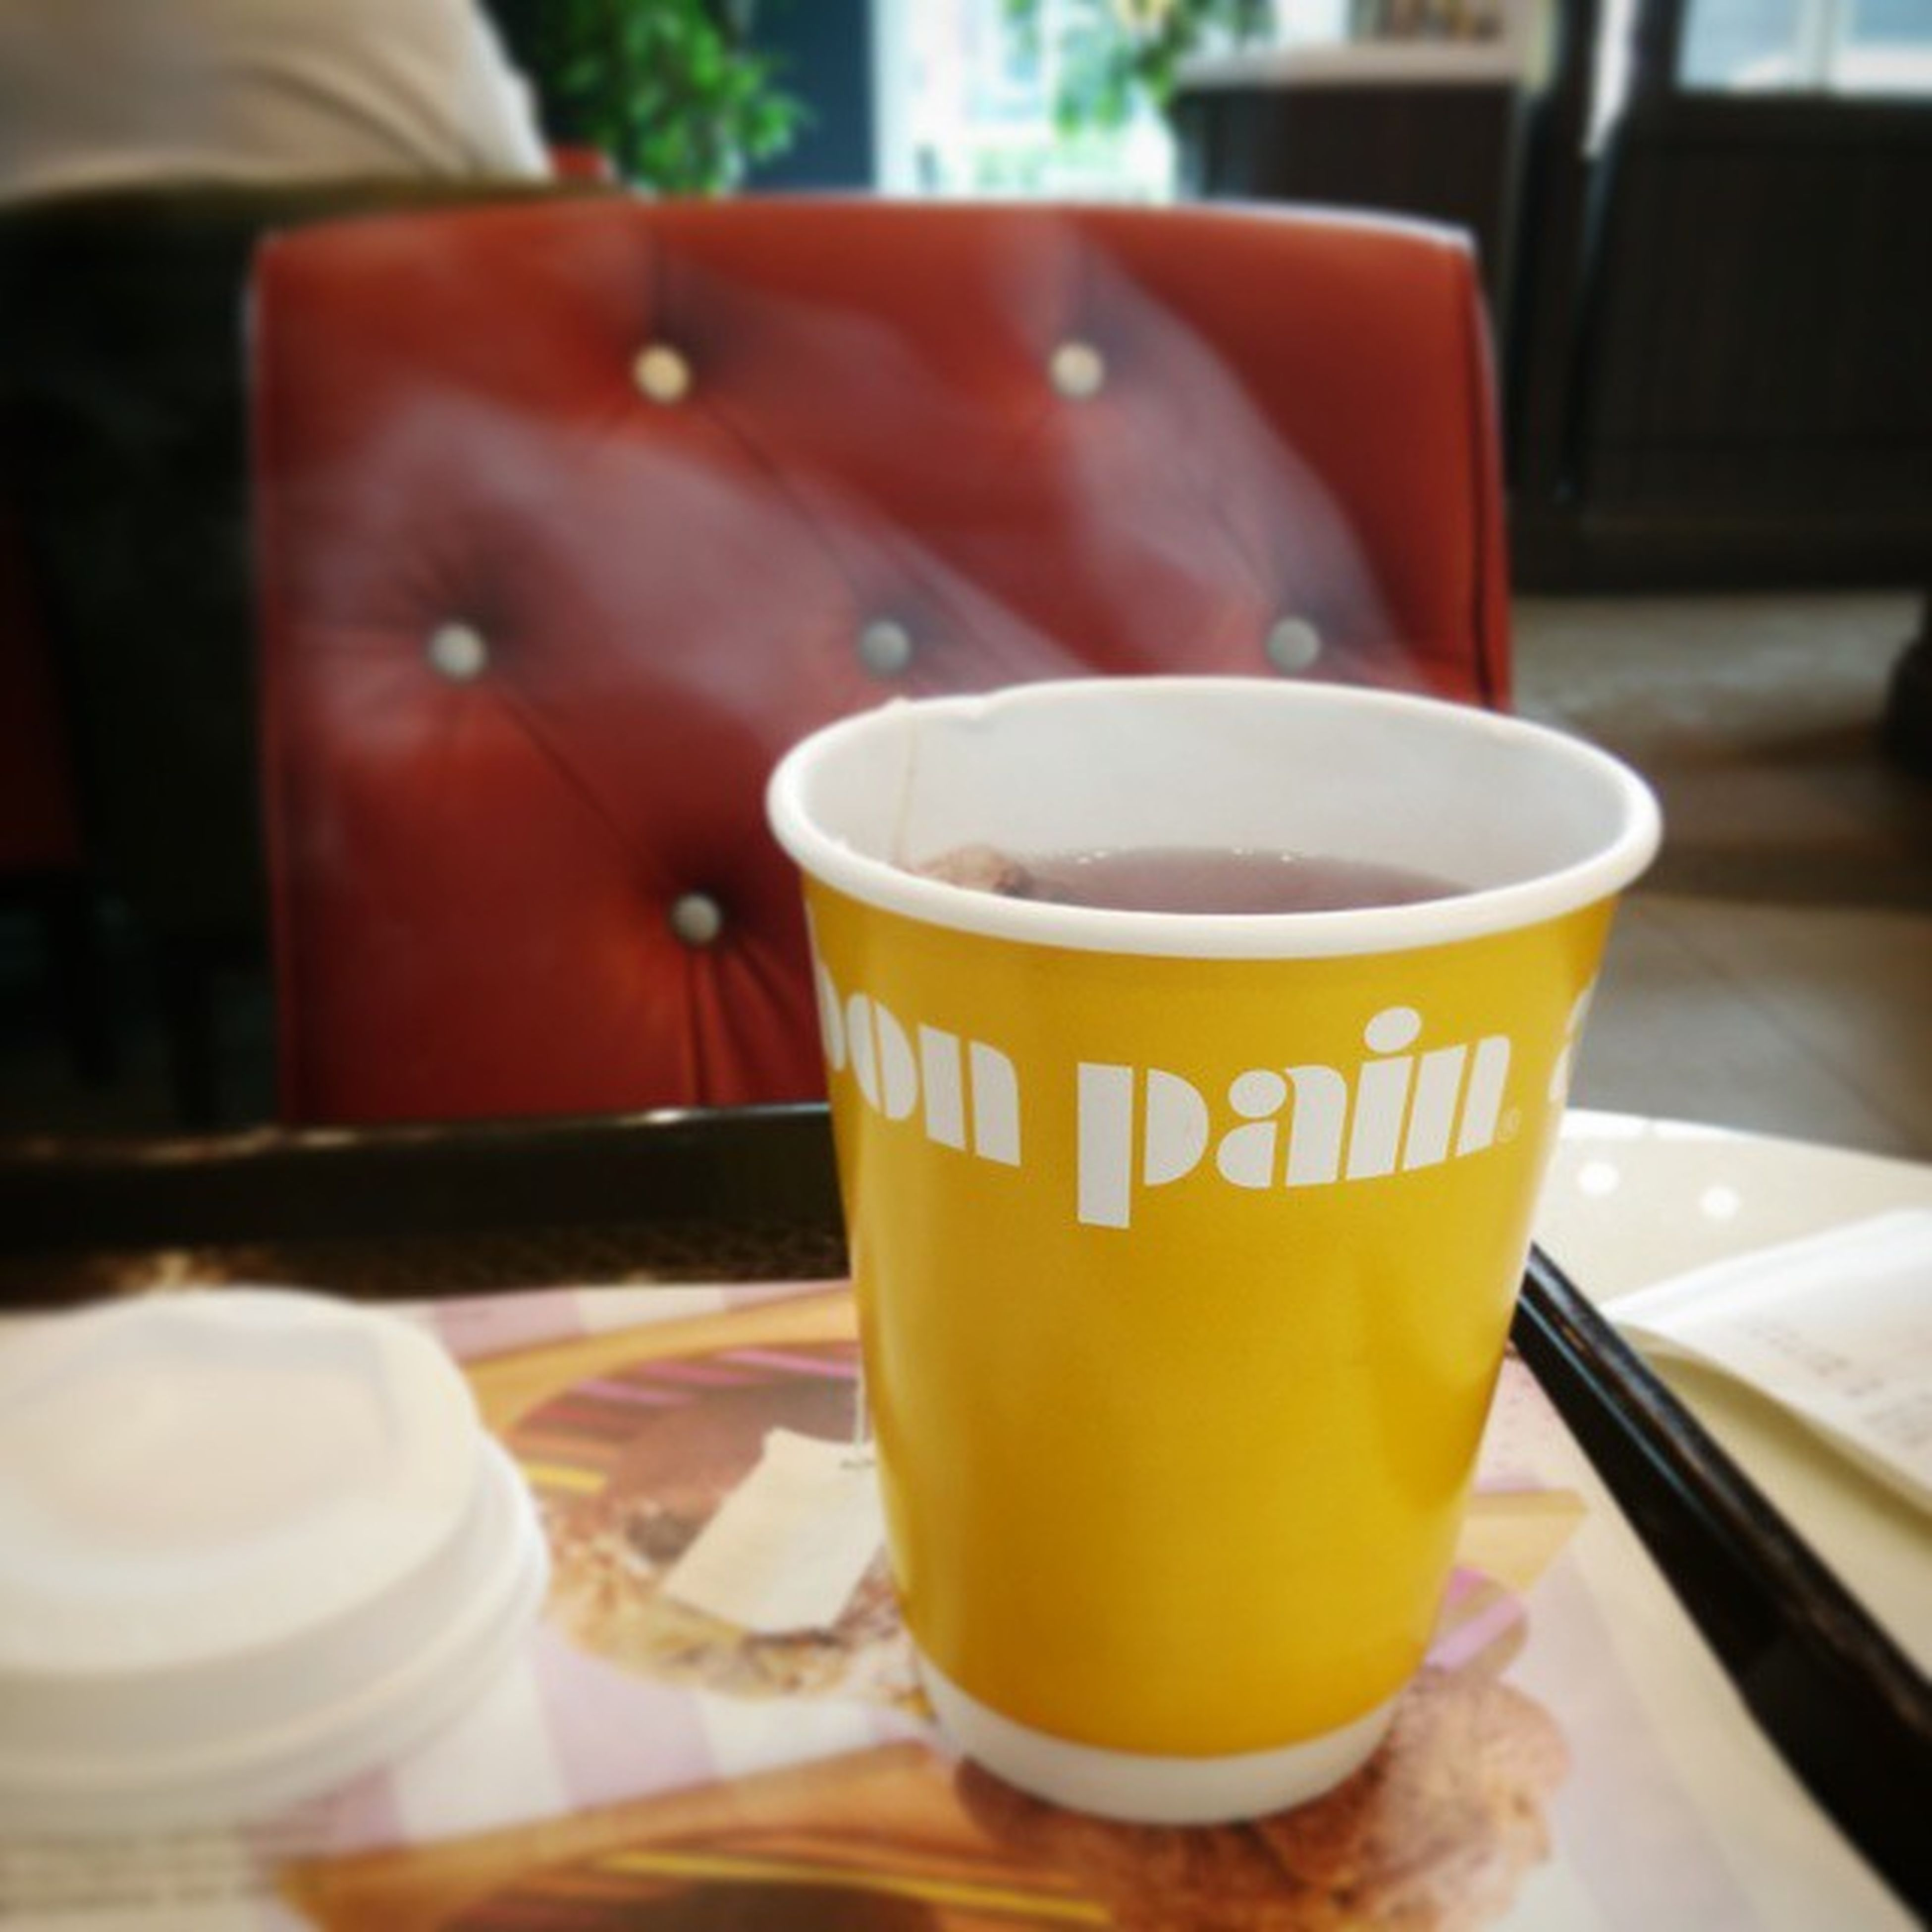 drink, food and drink, refreshment, coffee cup, freshness, coffee - drink, table, indoors, saucer, frothy drink, coffee, close-up, still life, cup, healthy eating, beverage, cafe, cappuccino, drinking glass, focus on foreground